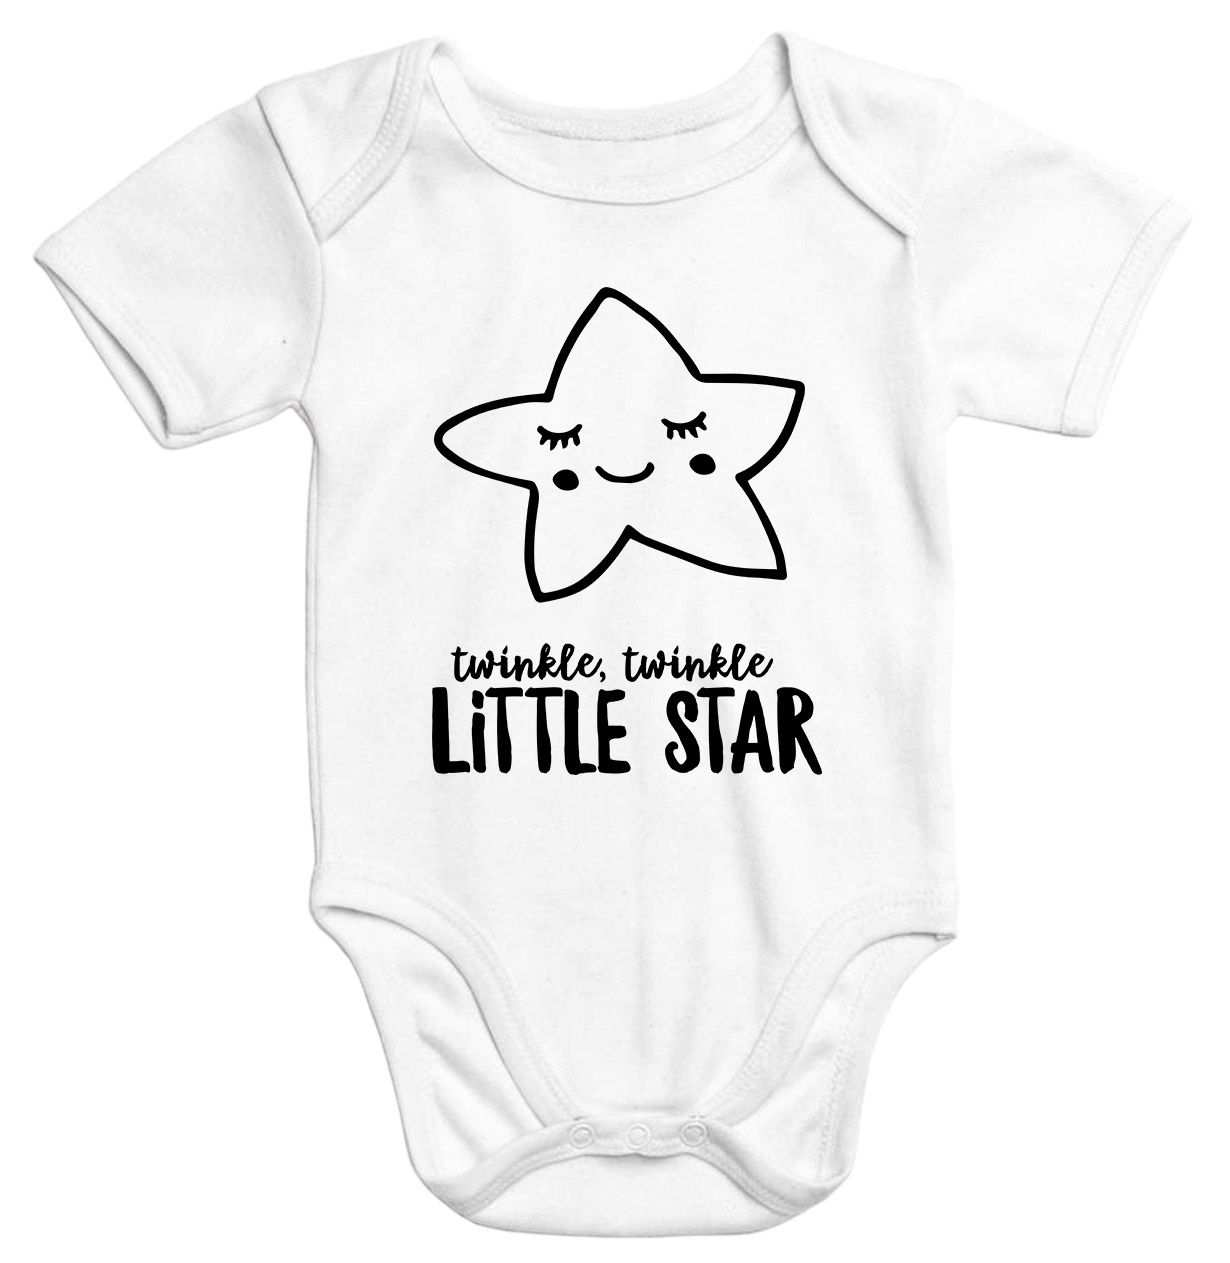 Baby Body Mit Stern Aufdruck Twinkle Twinkle Little Star Bio